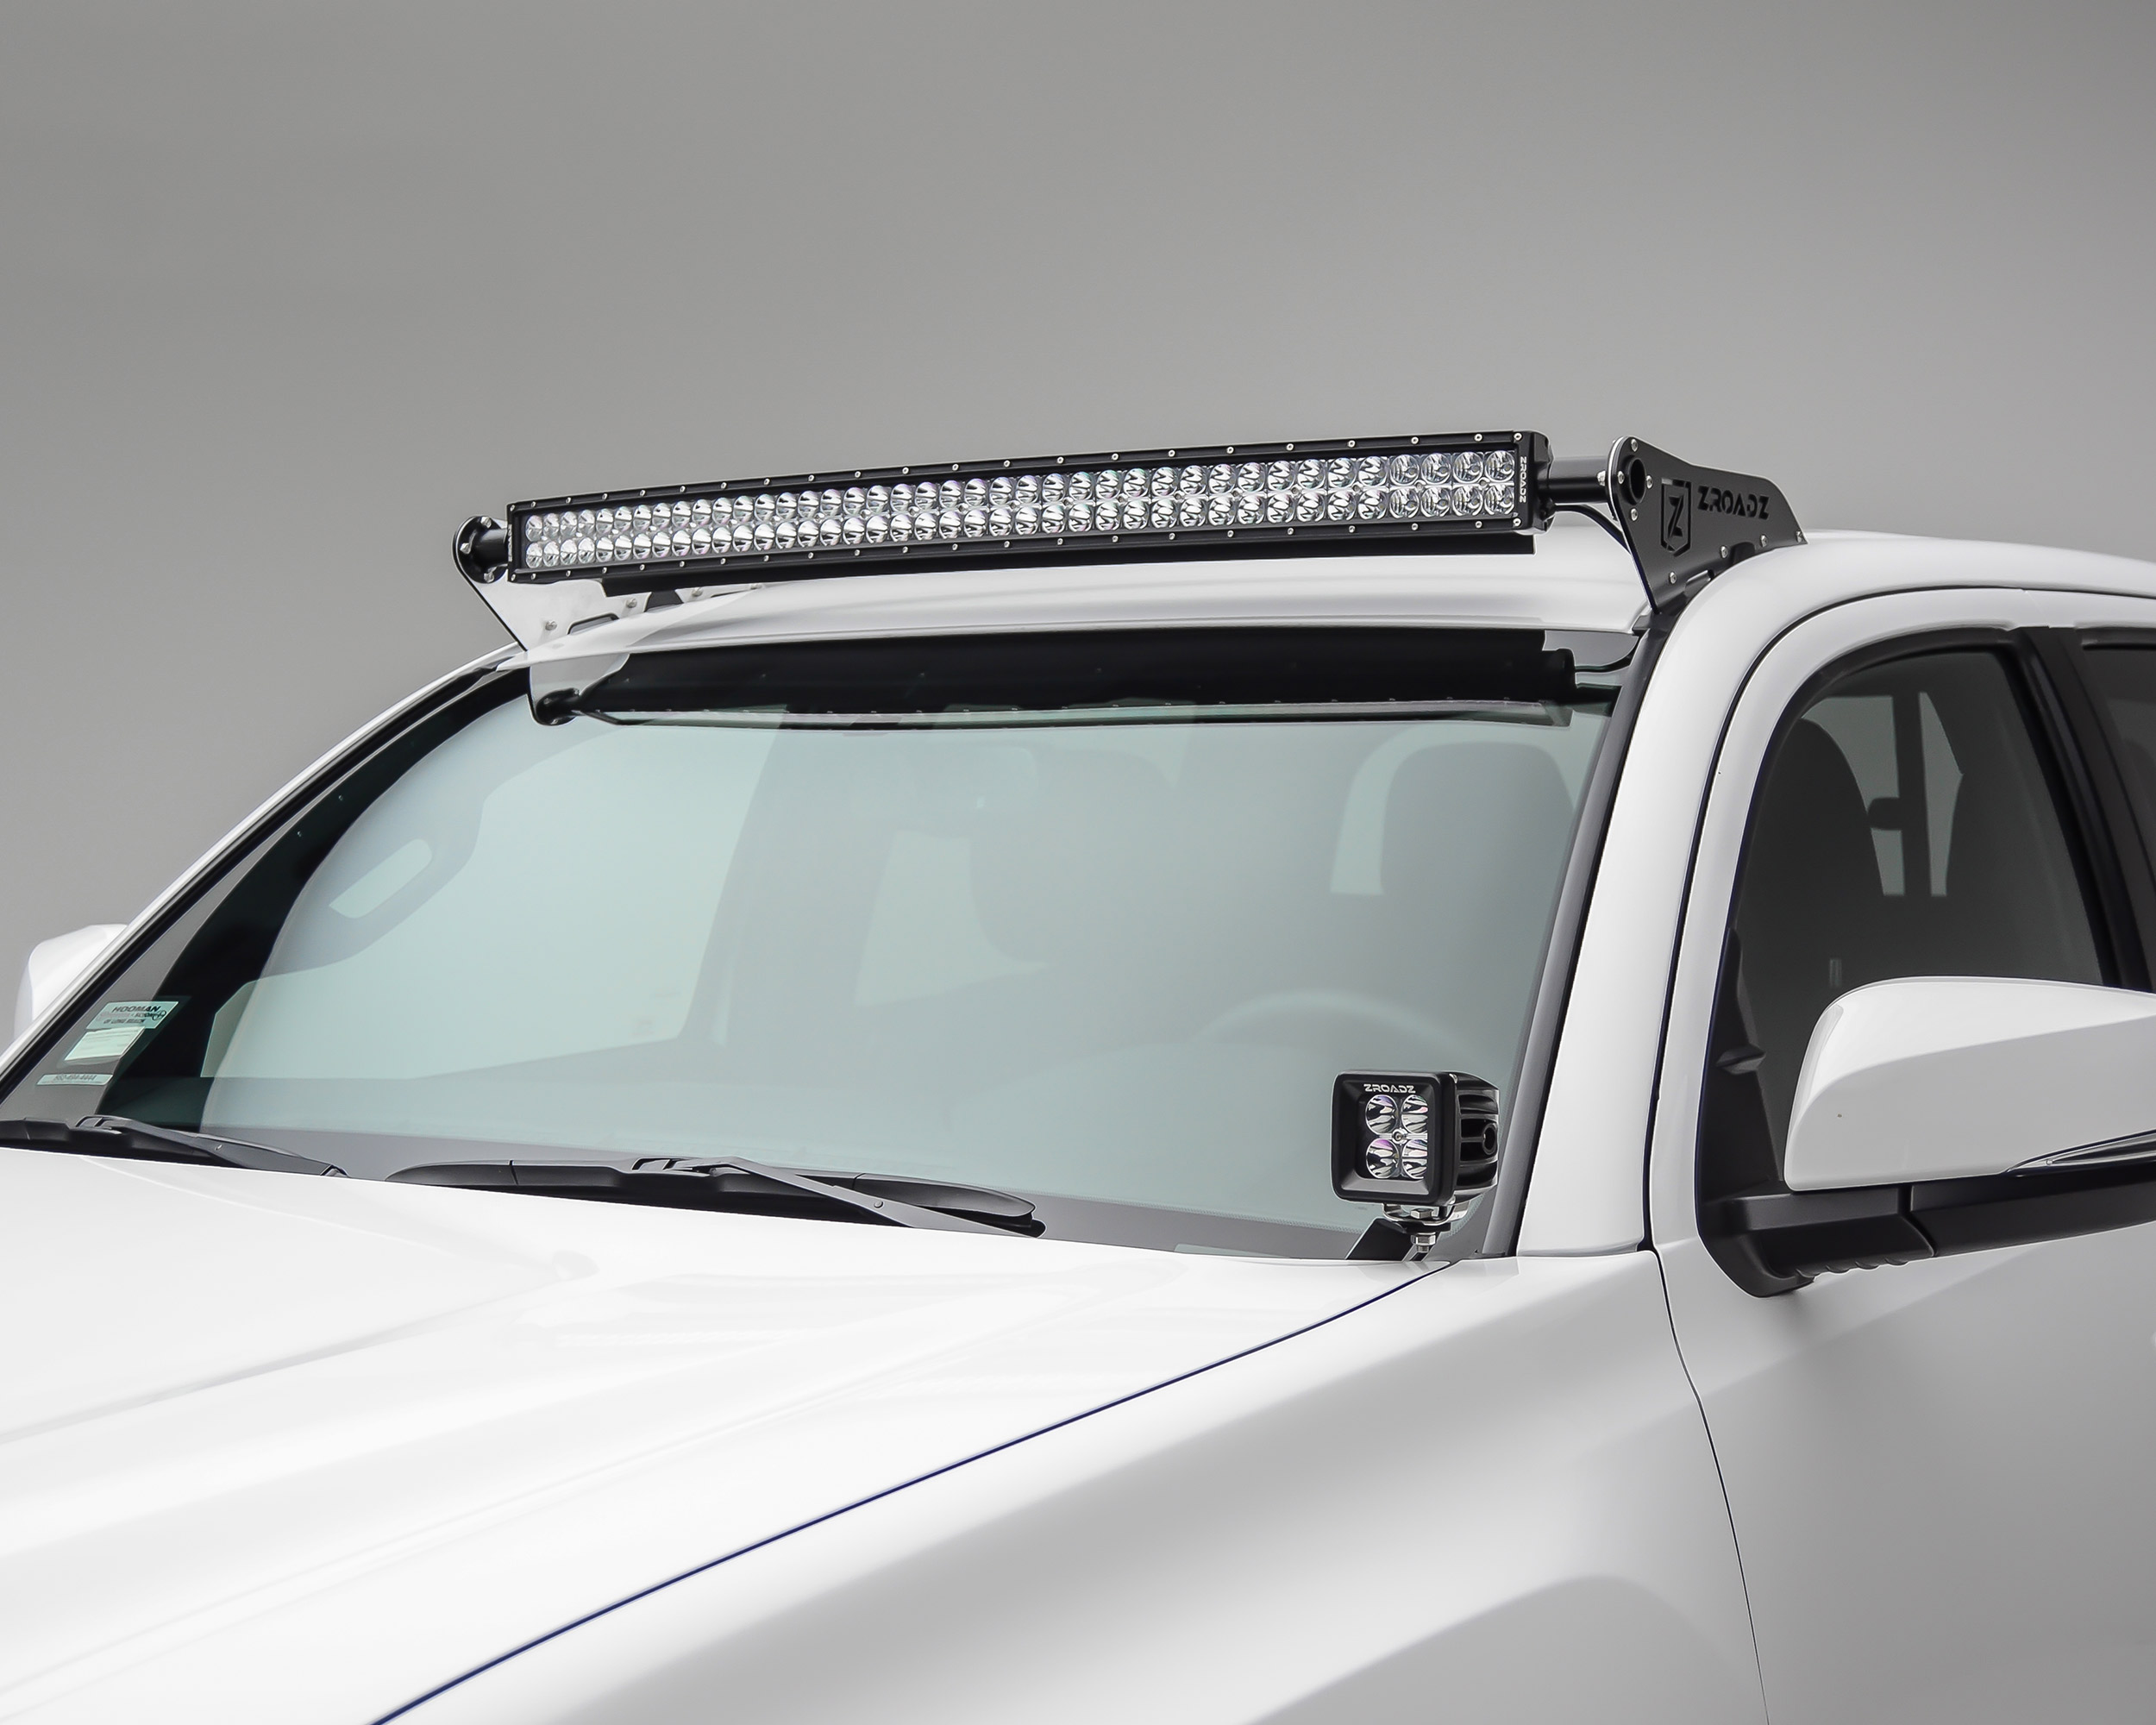 "Zroadz 2005-2017 Toyota Tacoma 40"" LED Roof Mount Kit With 40"" LED Light Bar"